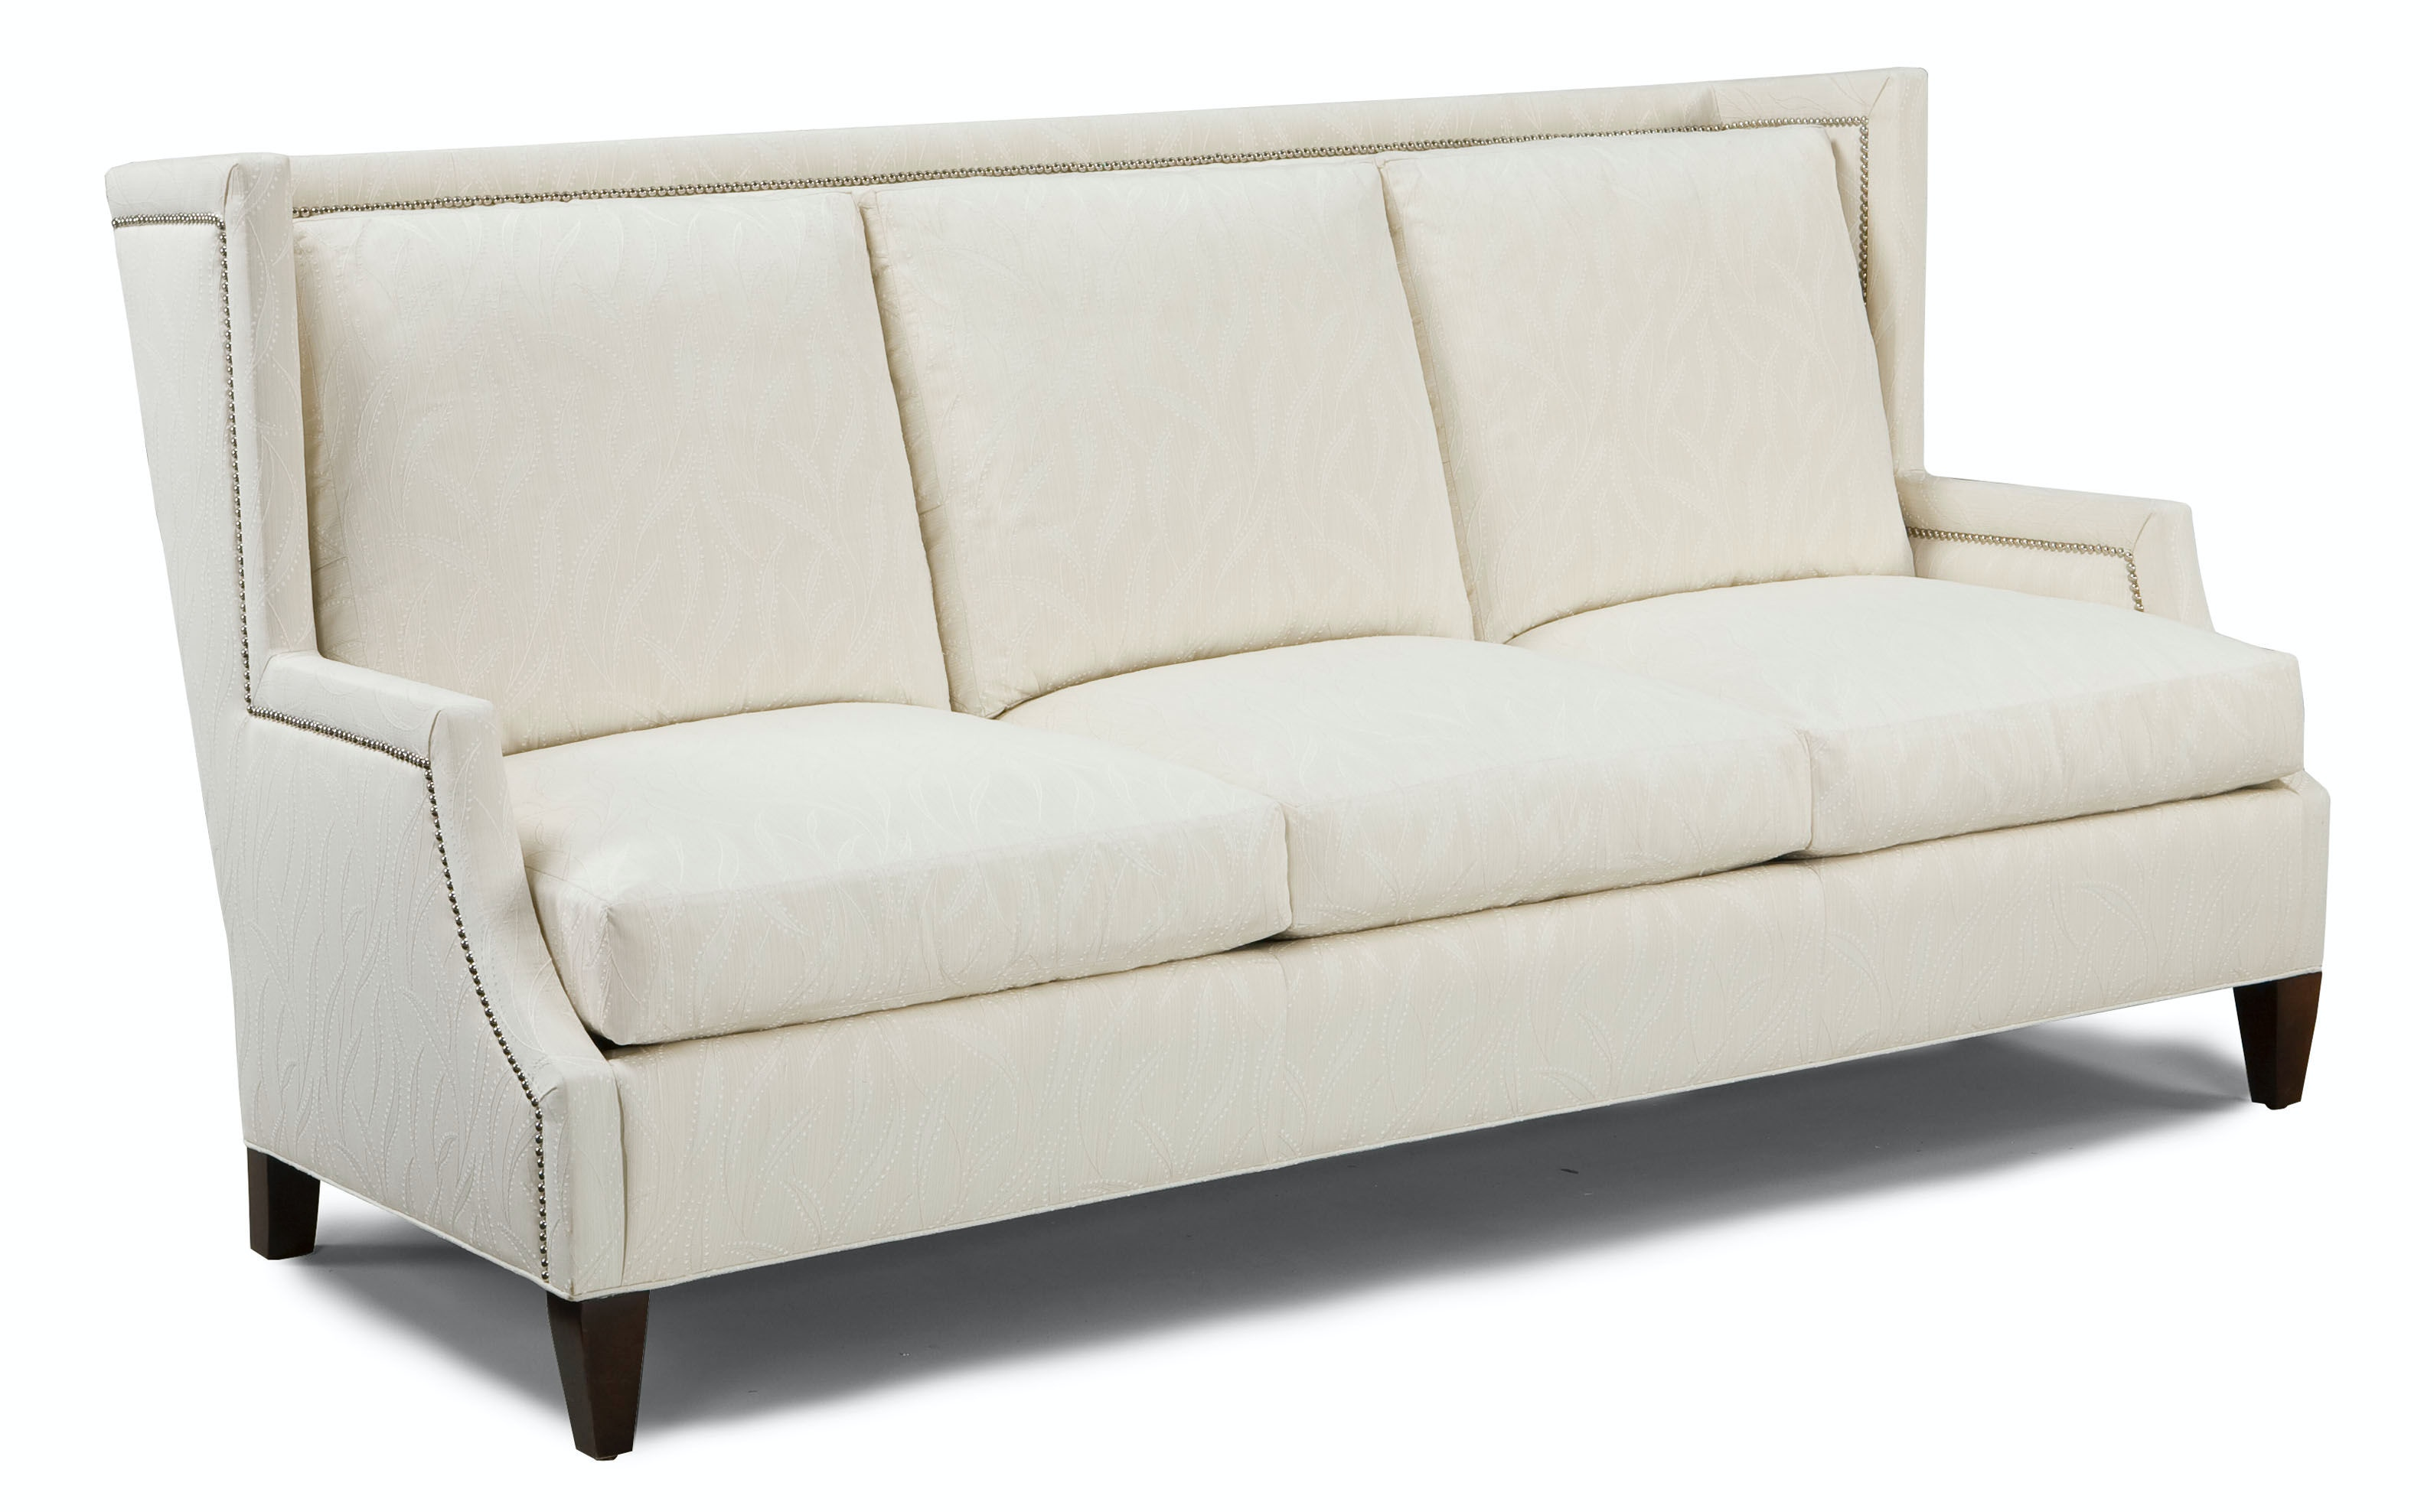 Fairfield Chair Company Living Room Sofa 2779 50 D  : 2779 50 from www.dnoblinfurniture.com size 1024 x 768 jpeg 30kB